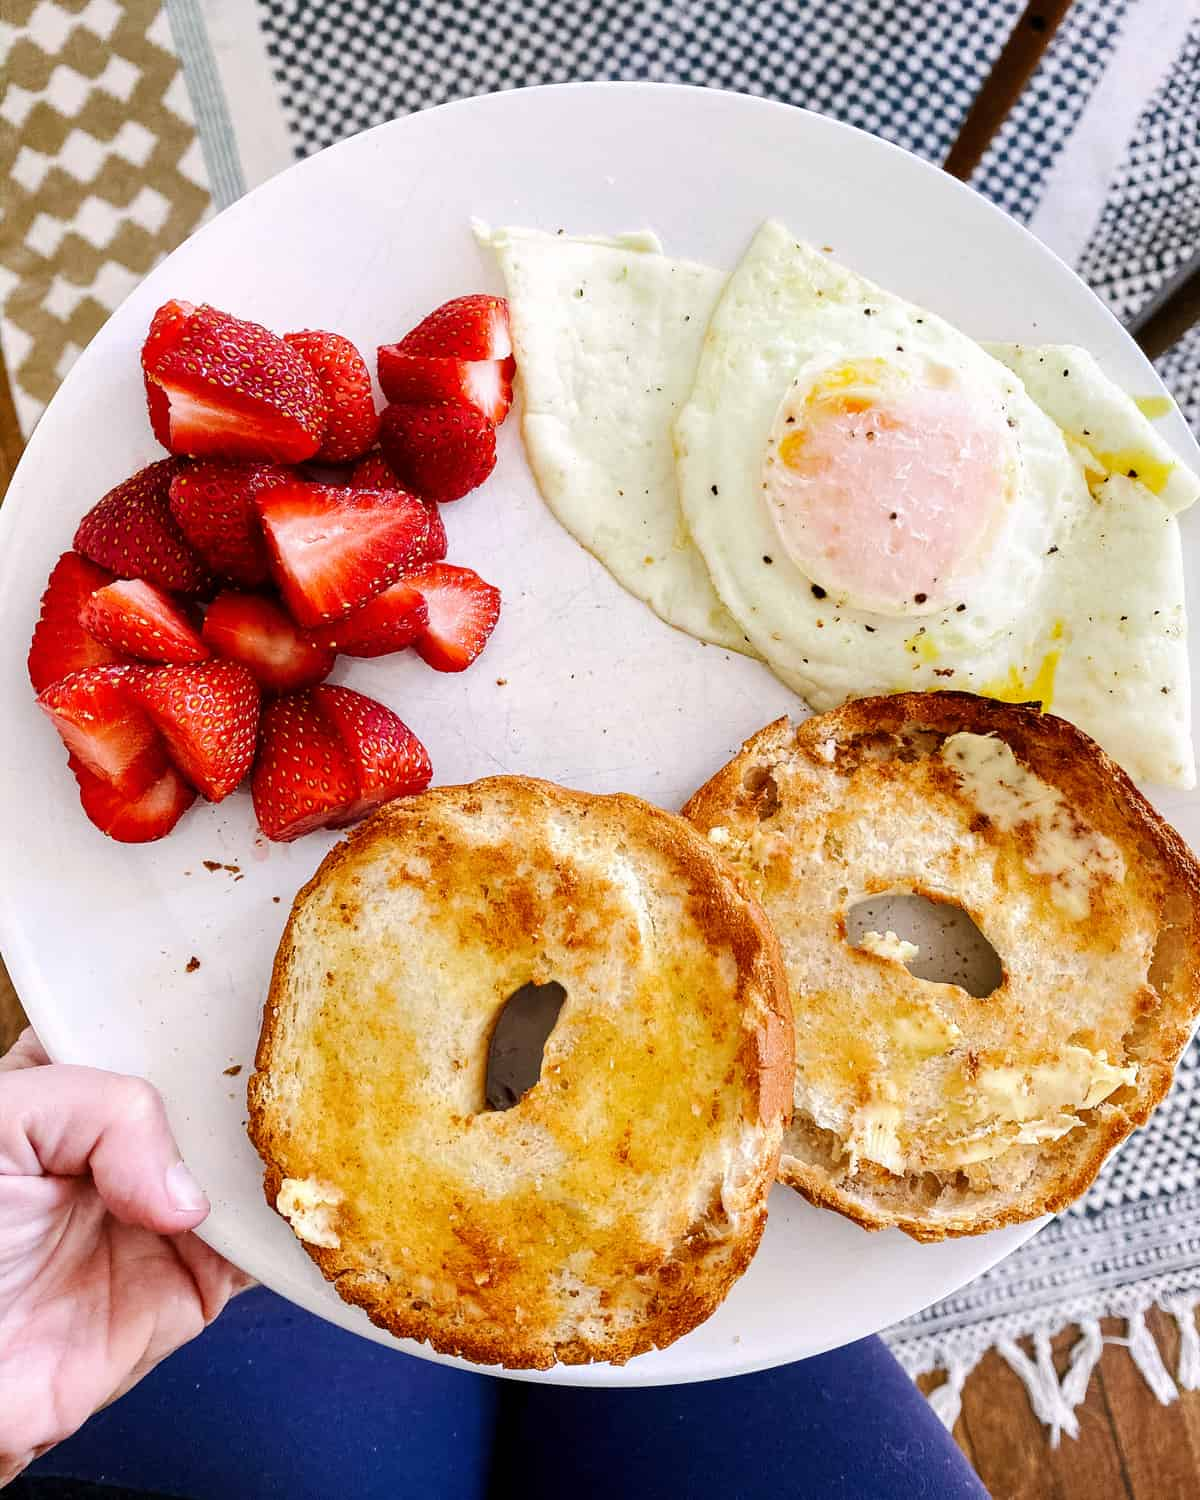 plate filled with toasted bagel, poached egg, and sliced strawberries